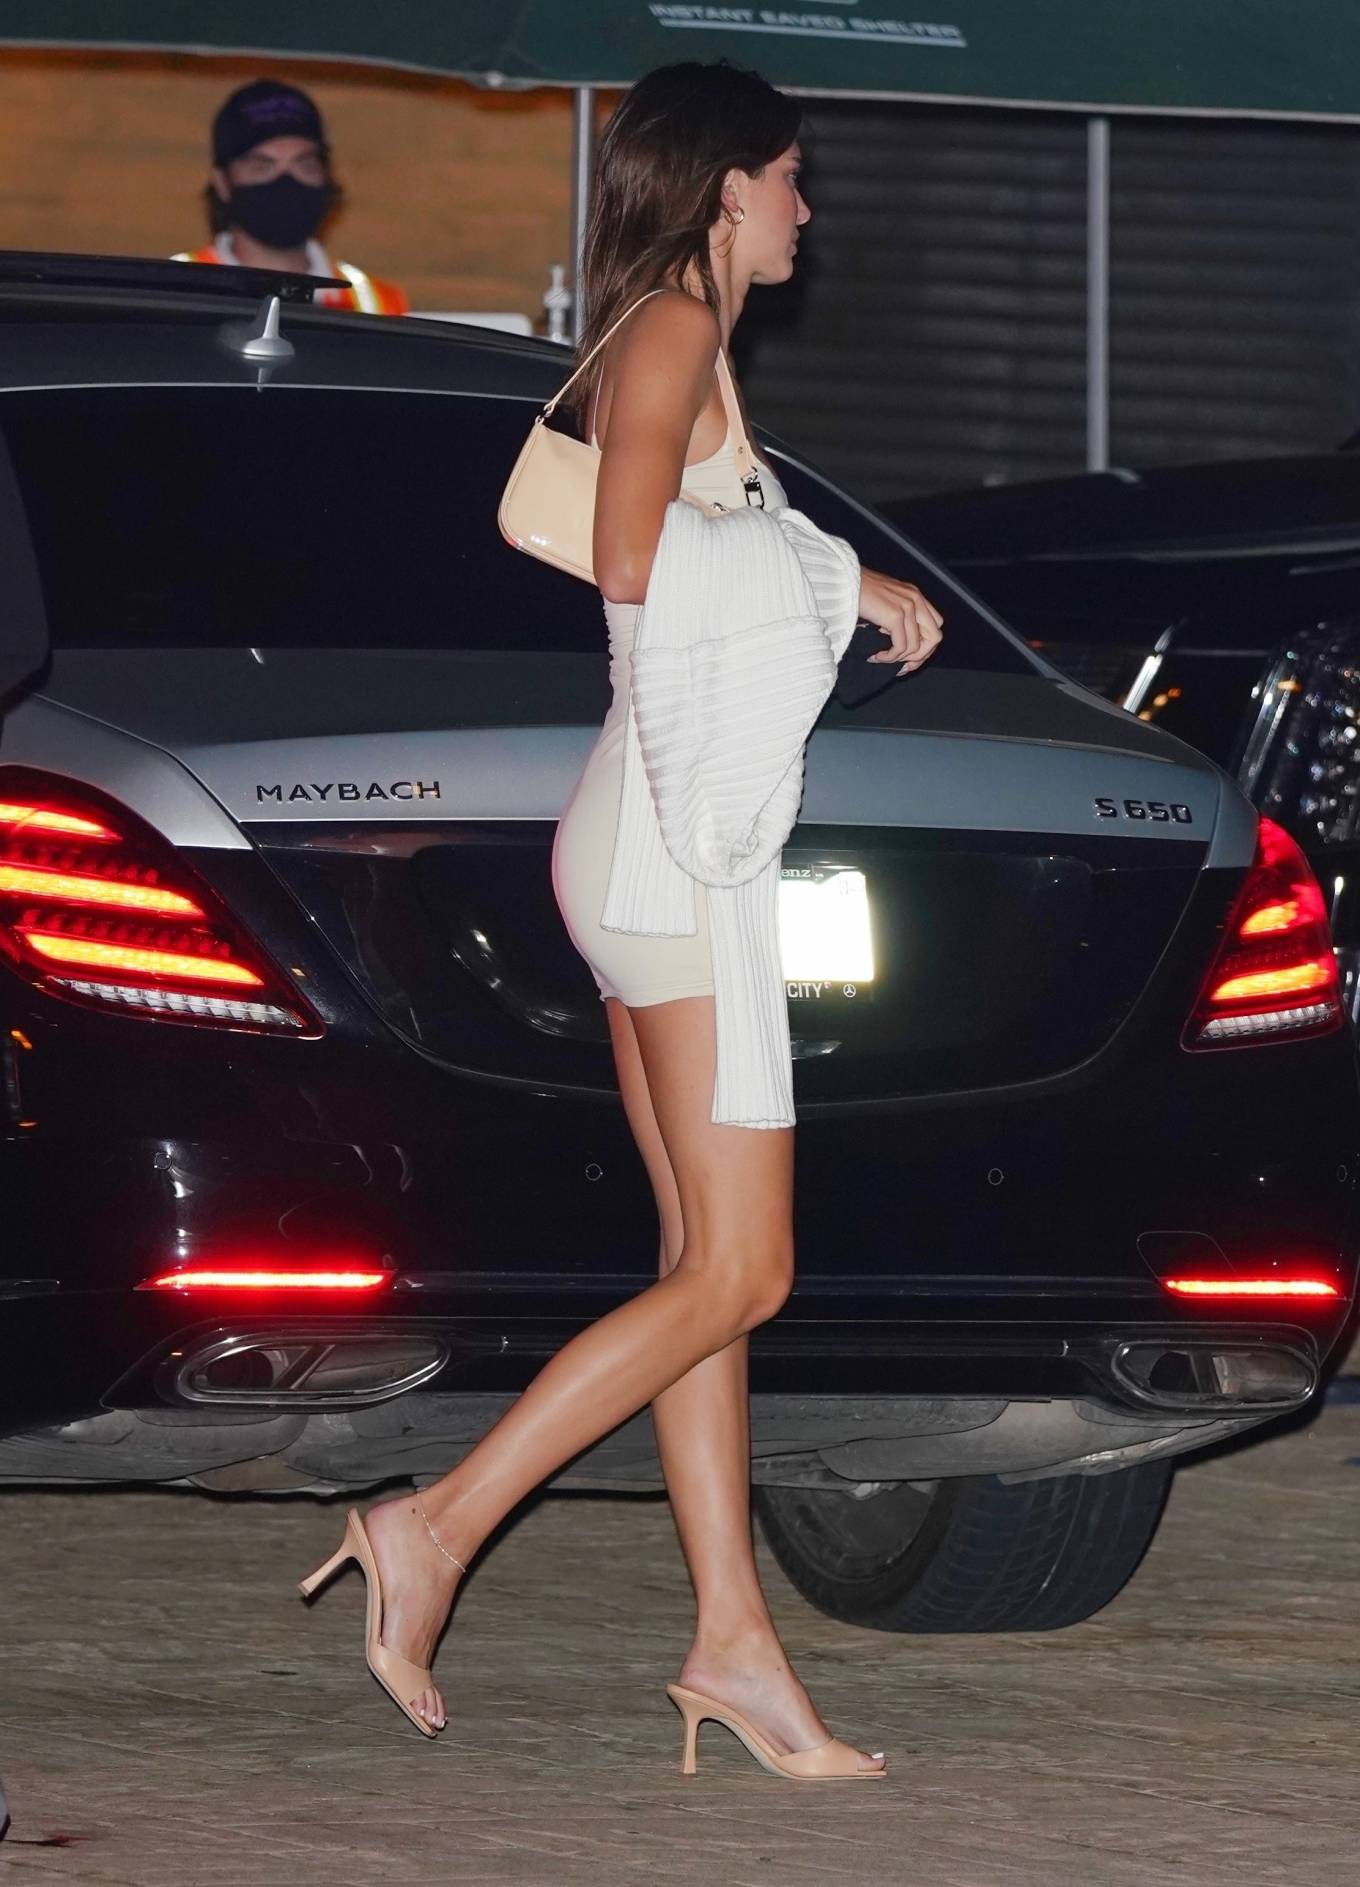 Kendall Jenner wearing a figure hugging white dress with a scoop neck and spaghetti straps